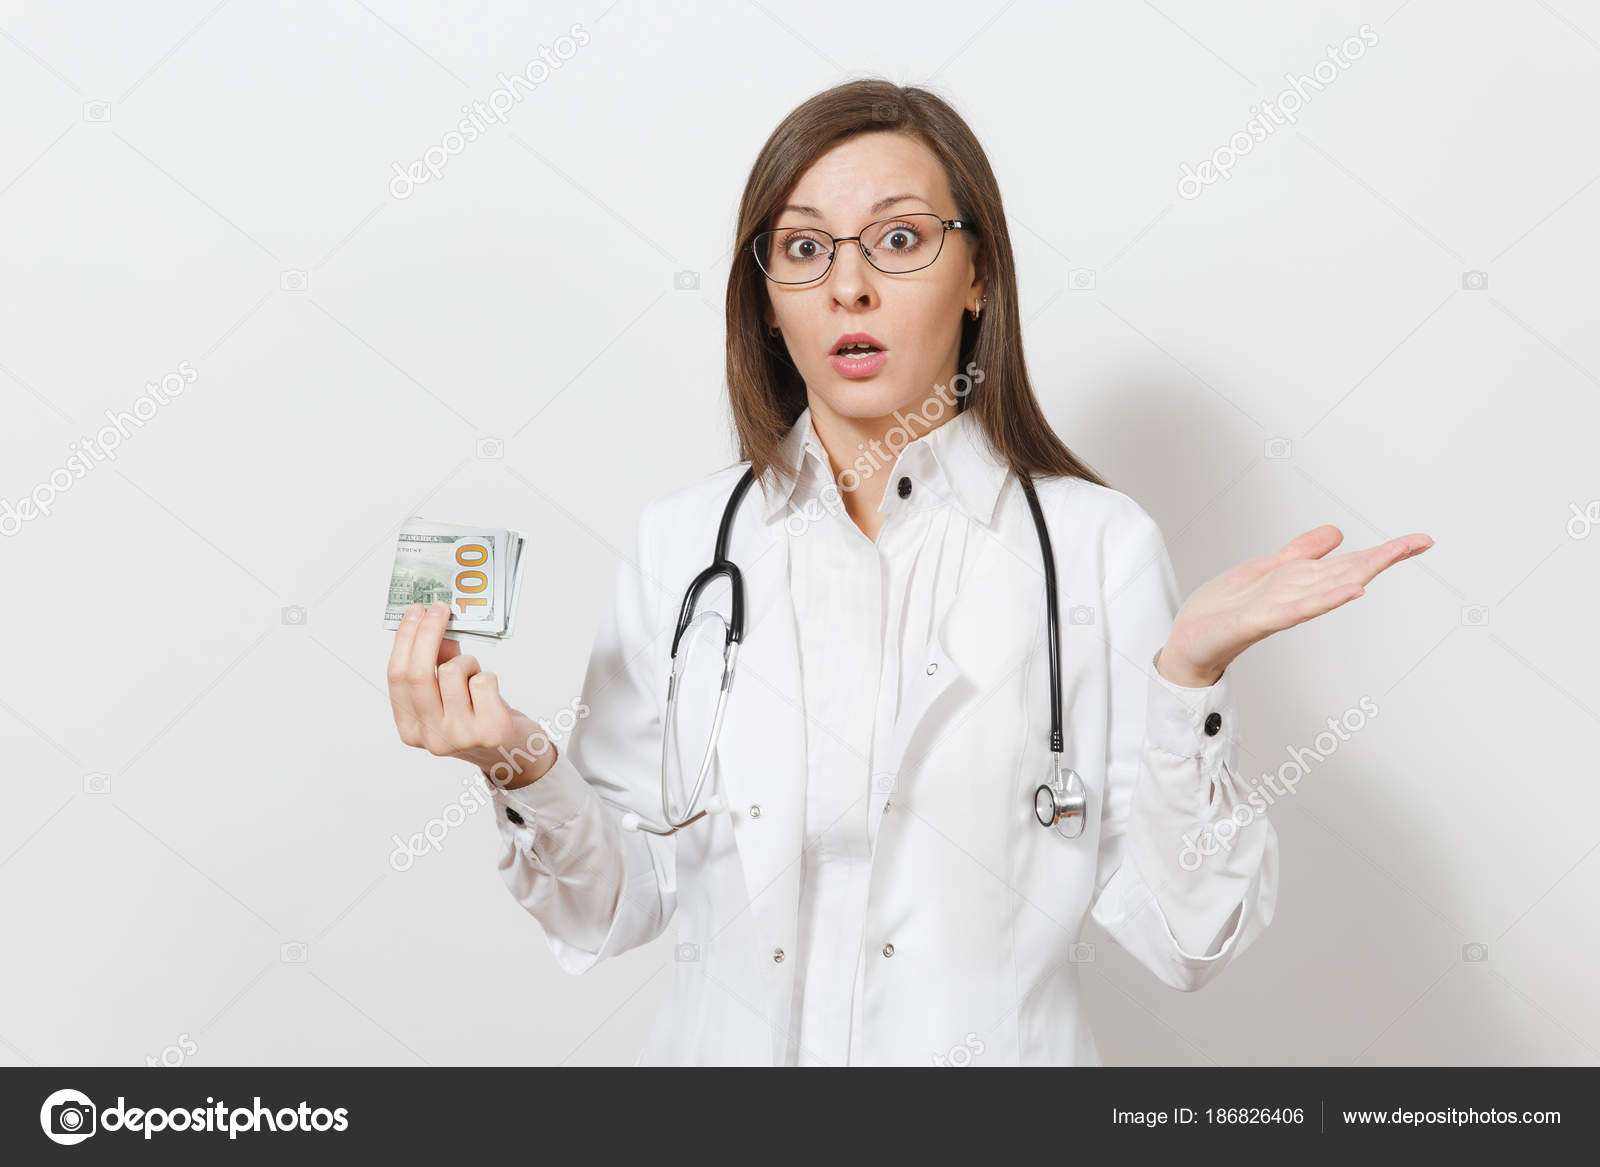 Shocked young doctor woman with stethoscope, glasses isolated on ...